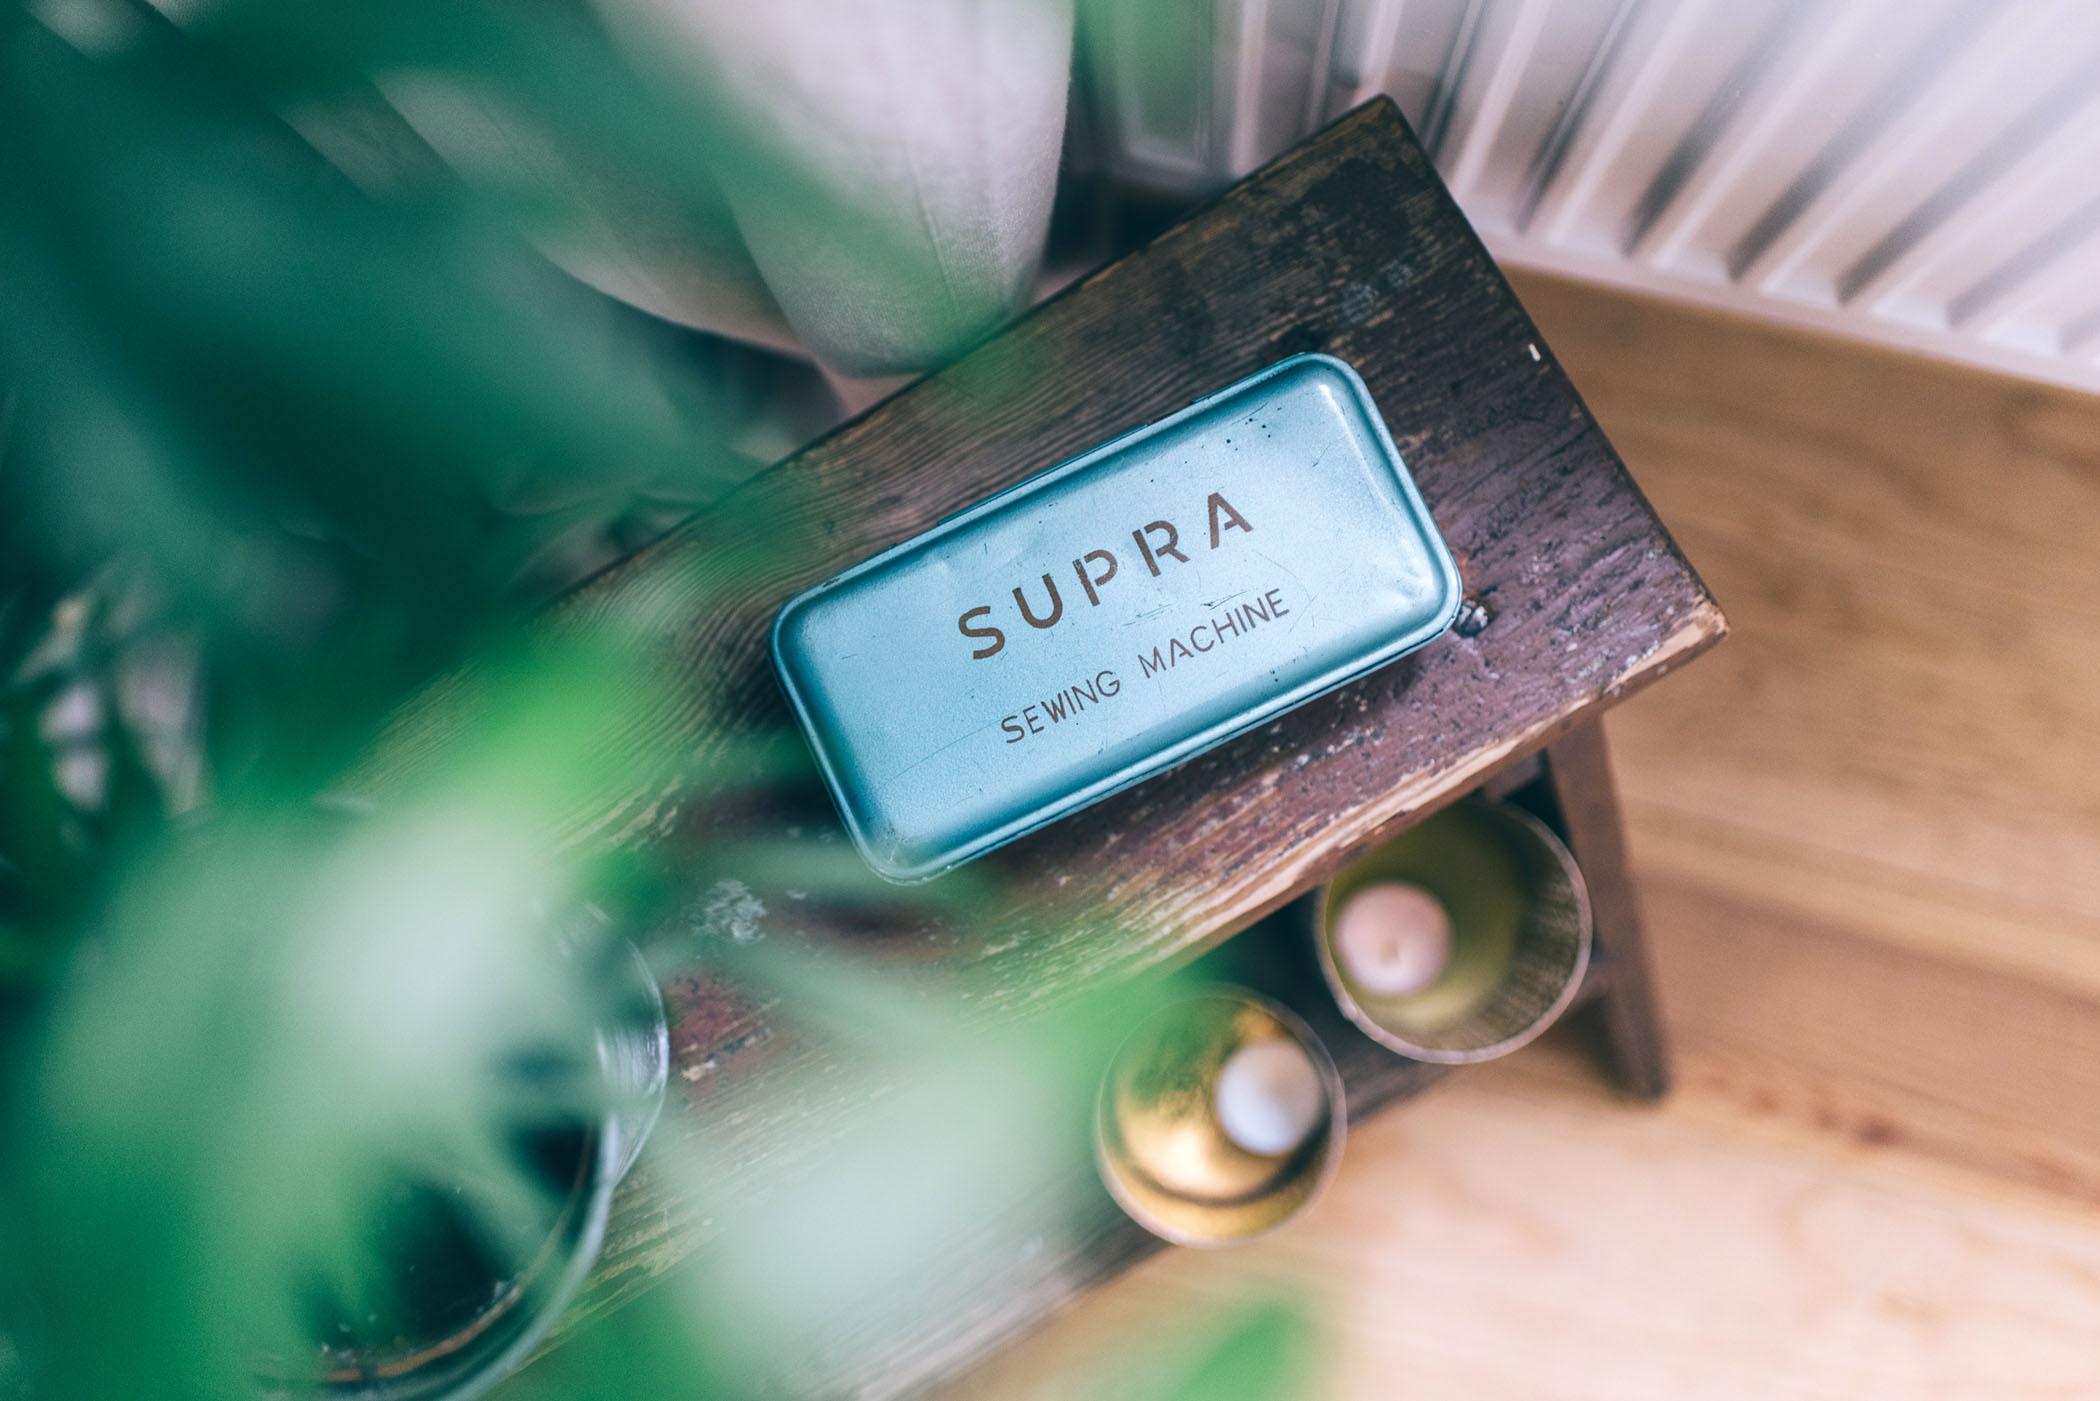 04-supra-sewing-machine